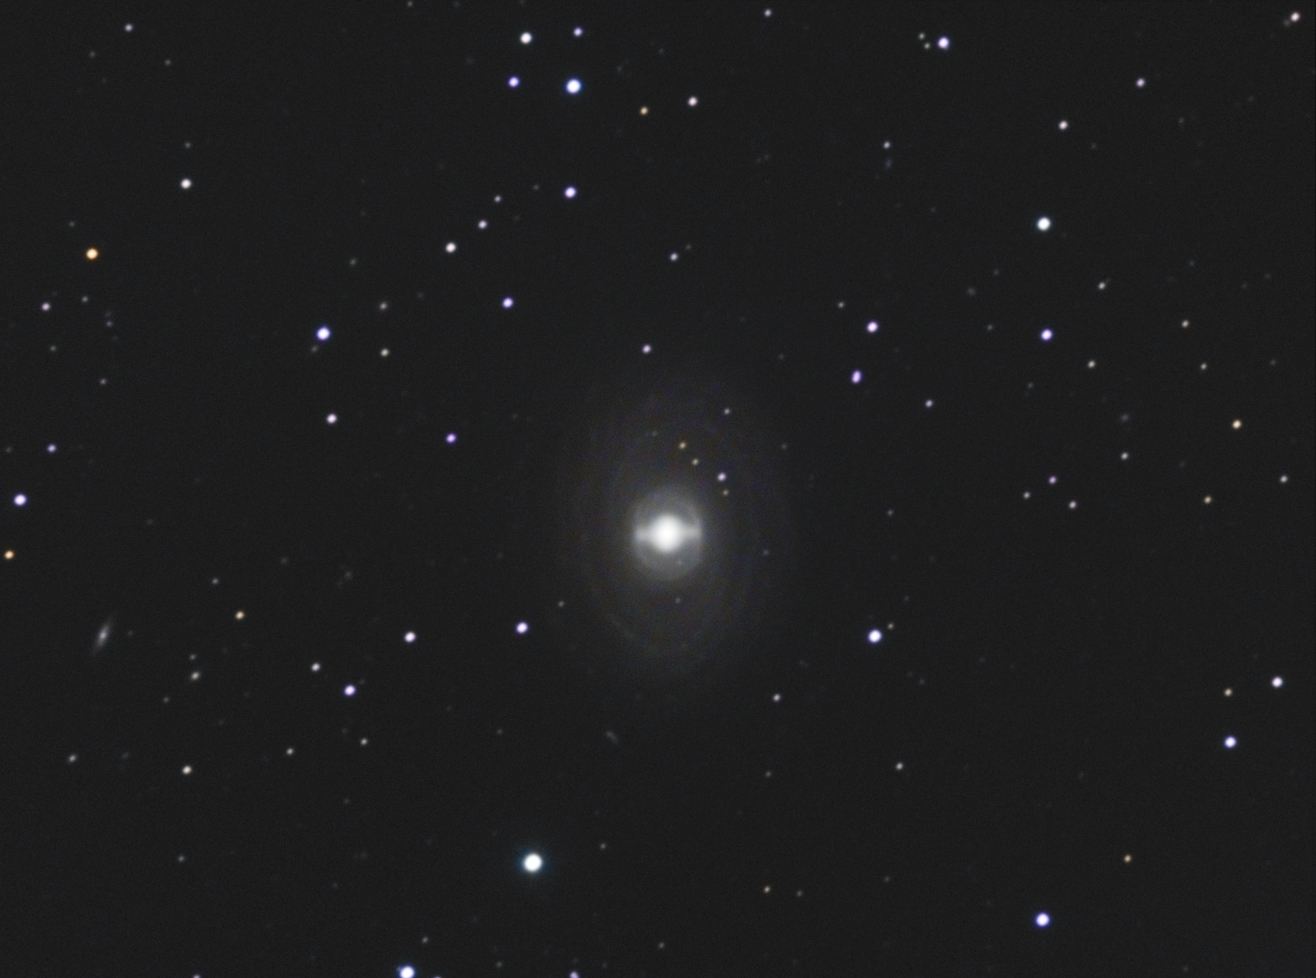 ngc1398-C8-red0.5-atik16hr-LRVB-SP.jpg